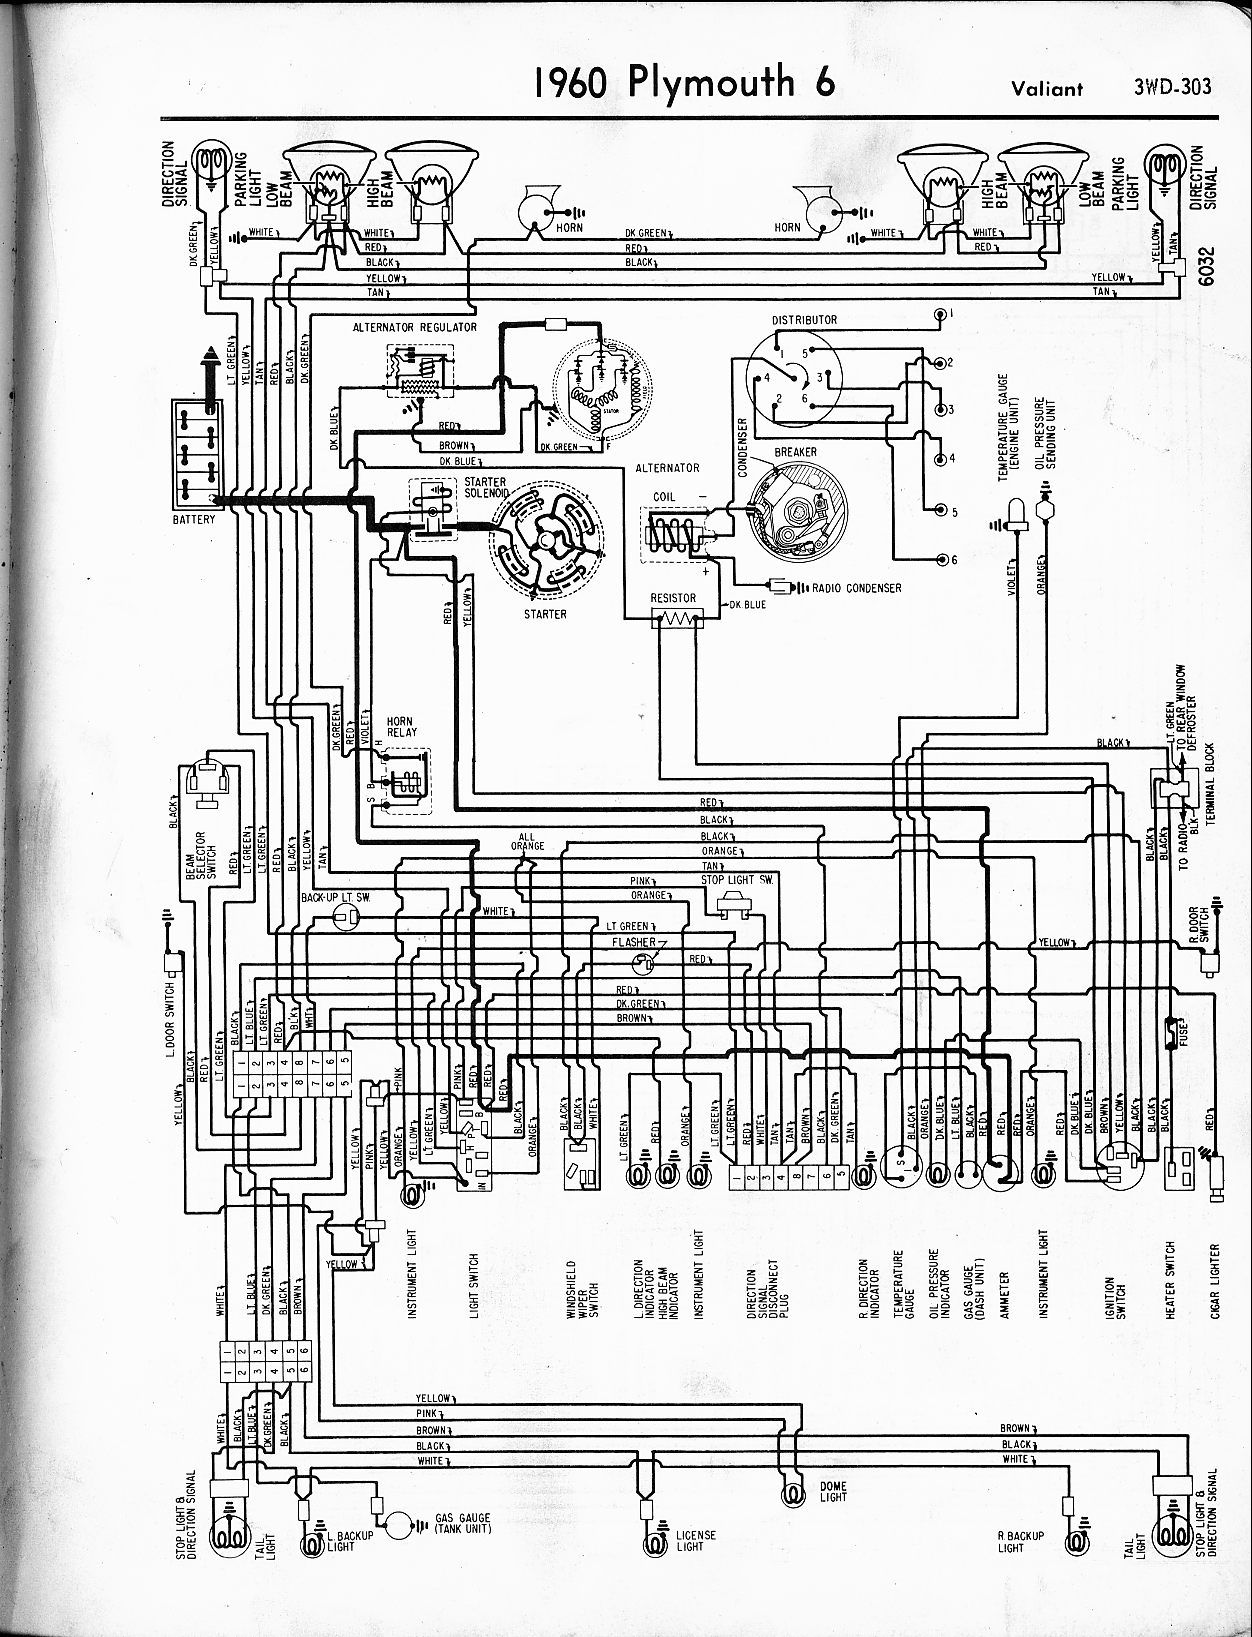 plymouth engine schematics electrical diagrams for chrysler dodge and plymouth cars plymouth